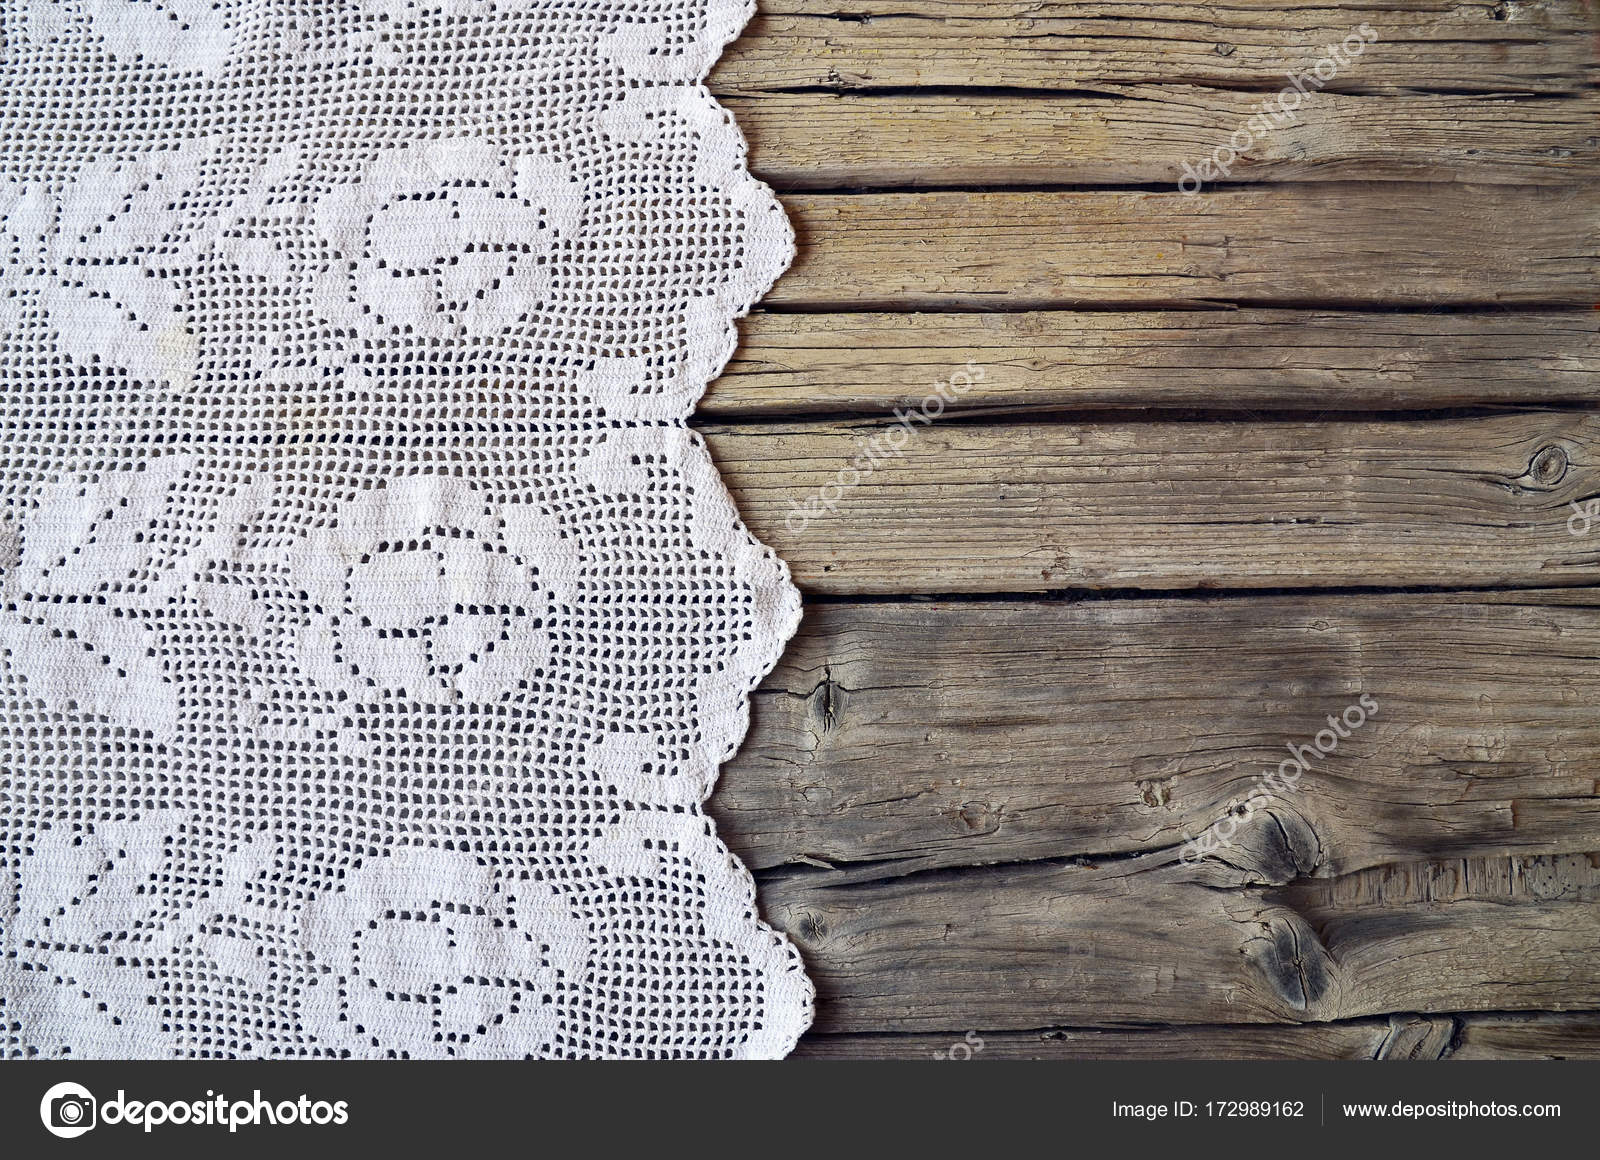 Vintage Handmade Lace Tablecloth On Rustic Wooden BackgroundLace Napkin Old Table